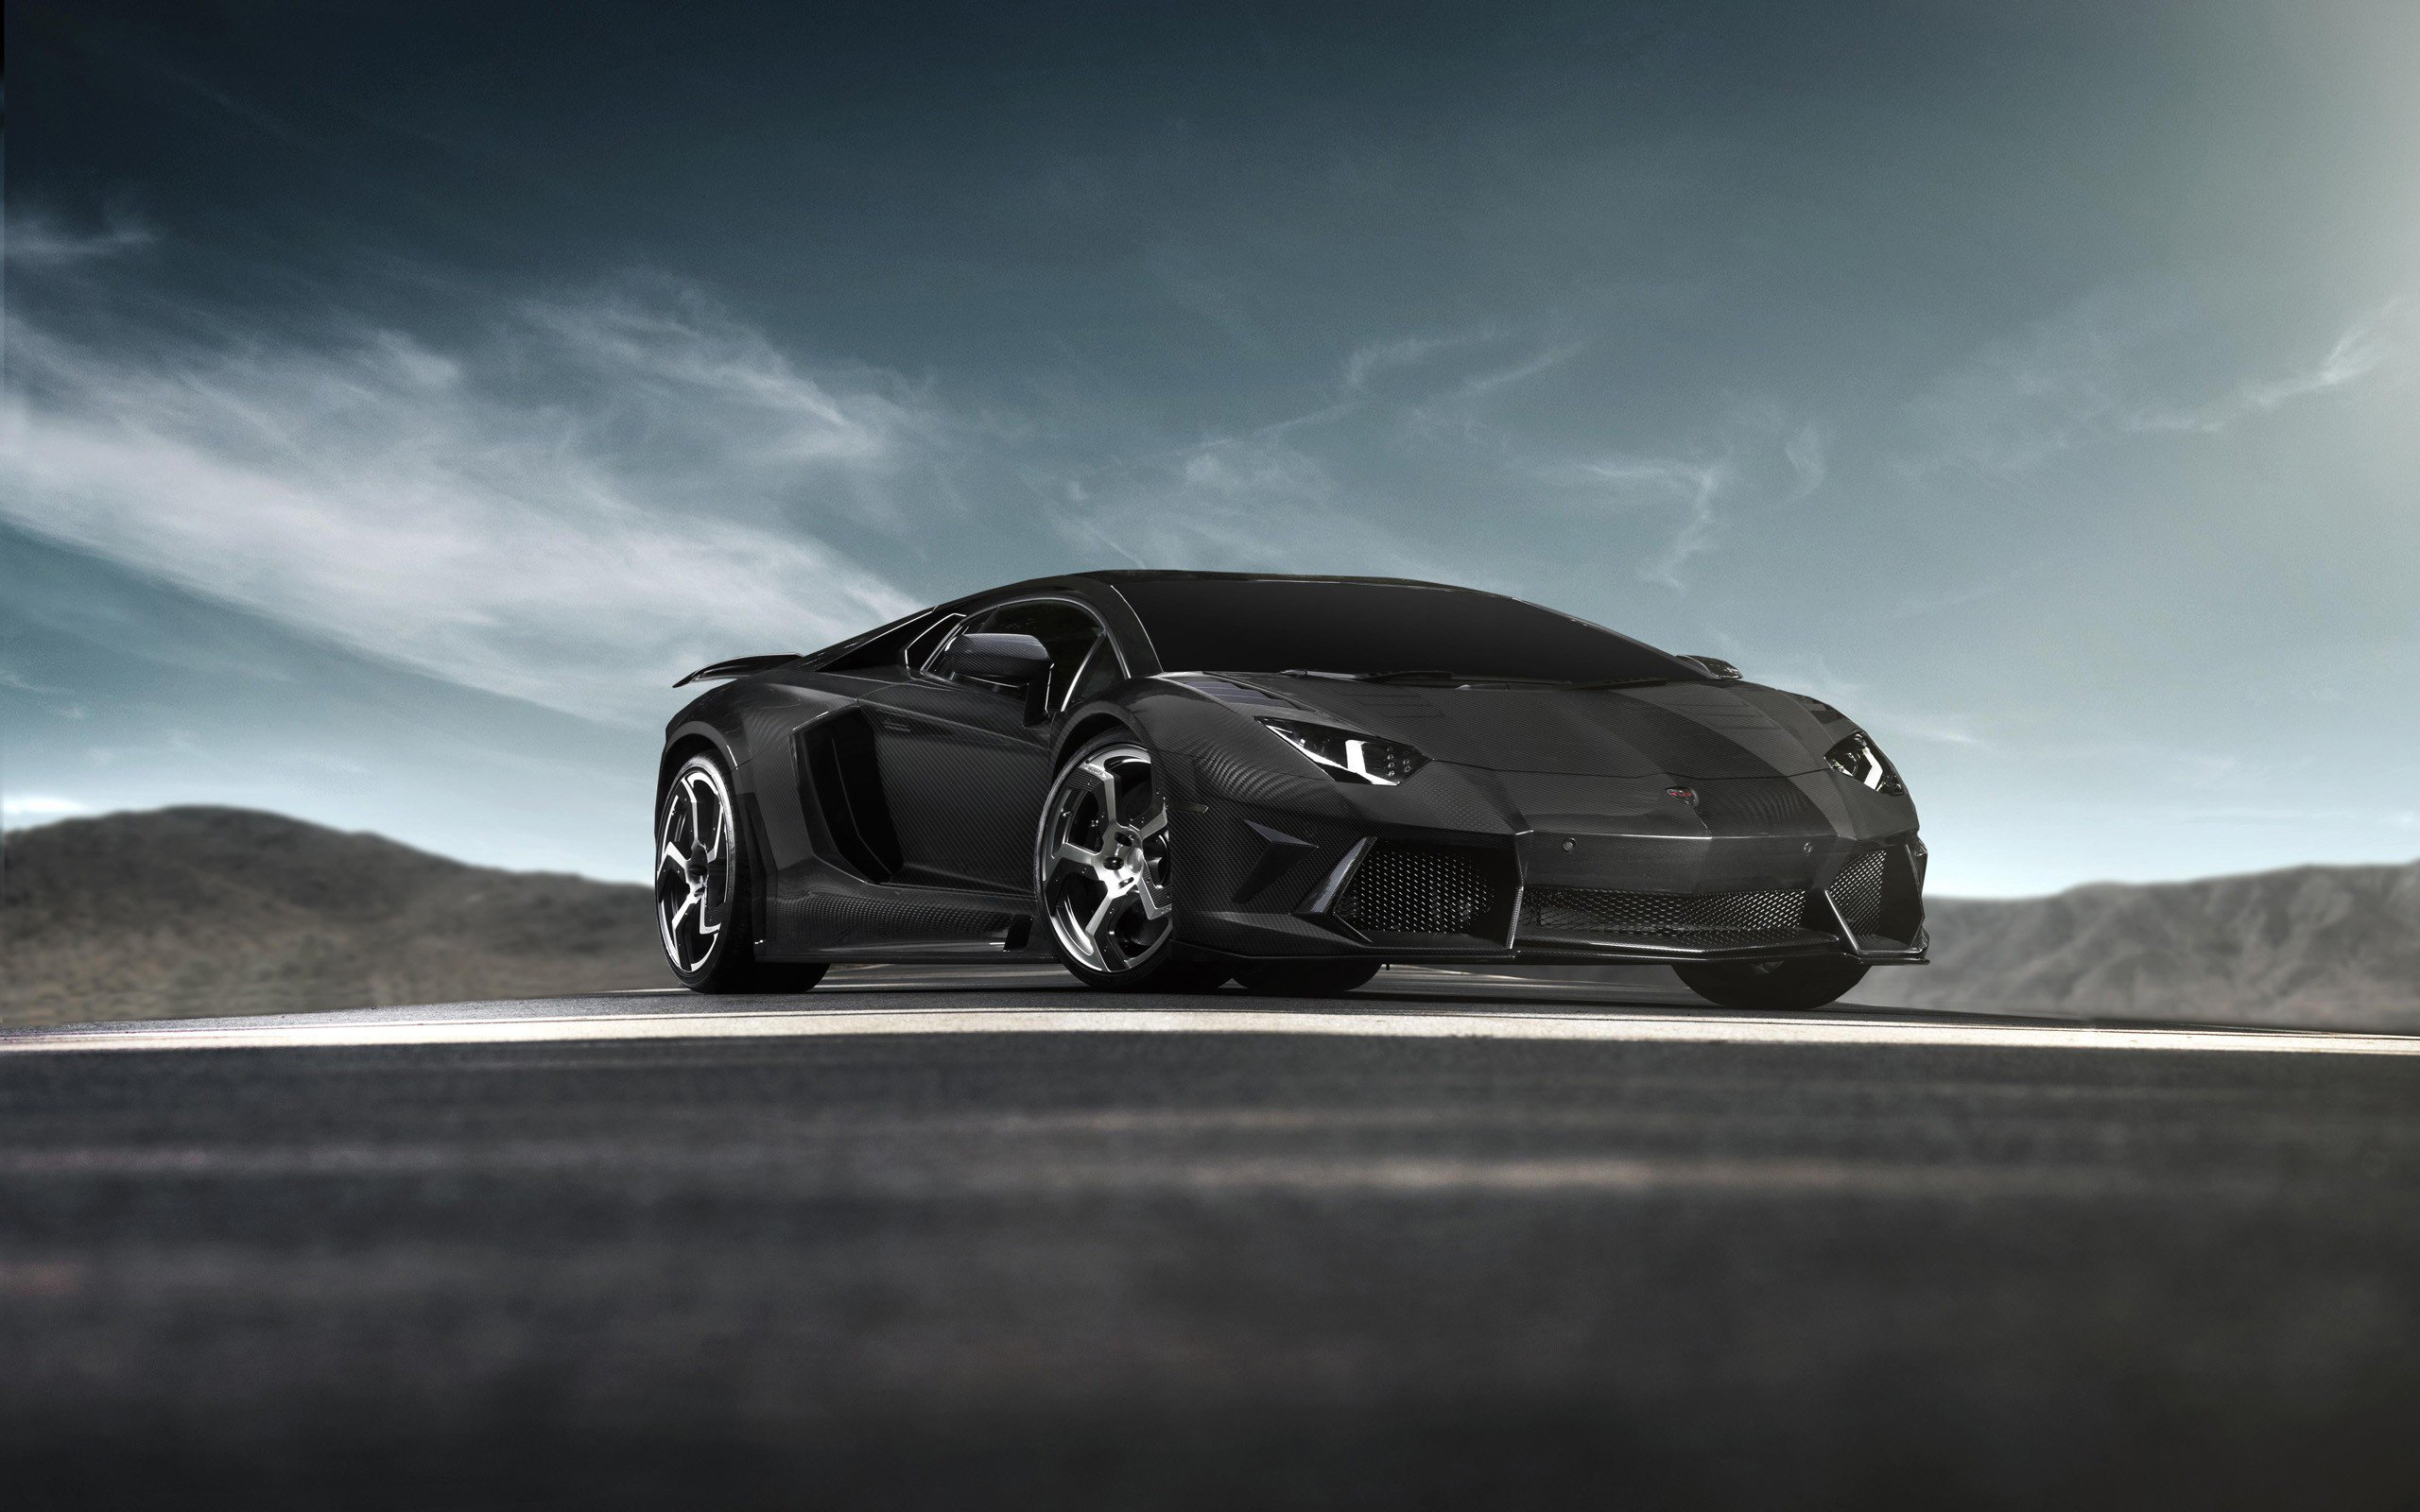 2048x1152 Lamborghini Full Black 2048x1152 Resolution HD